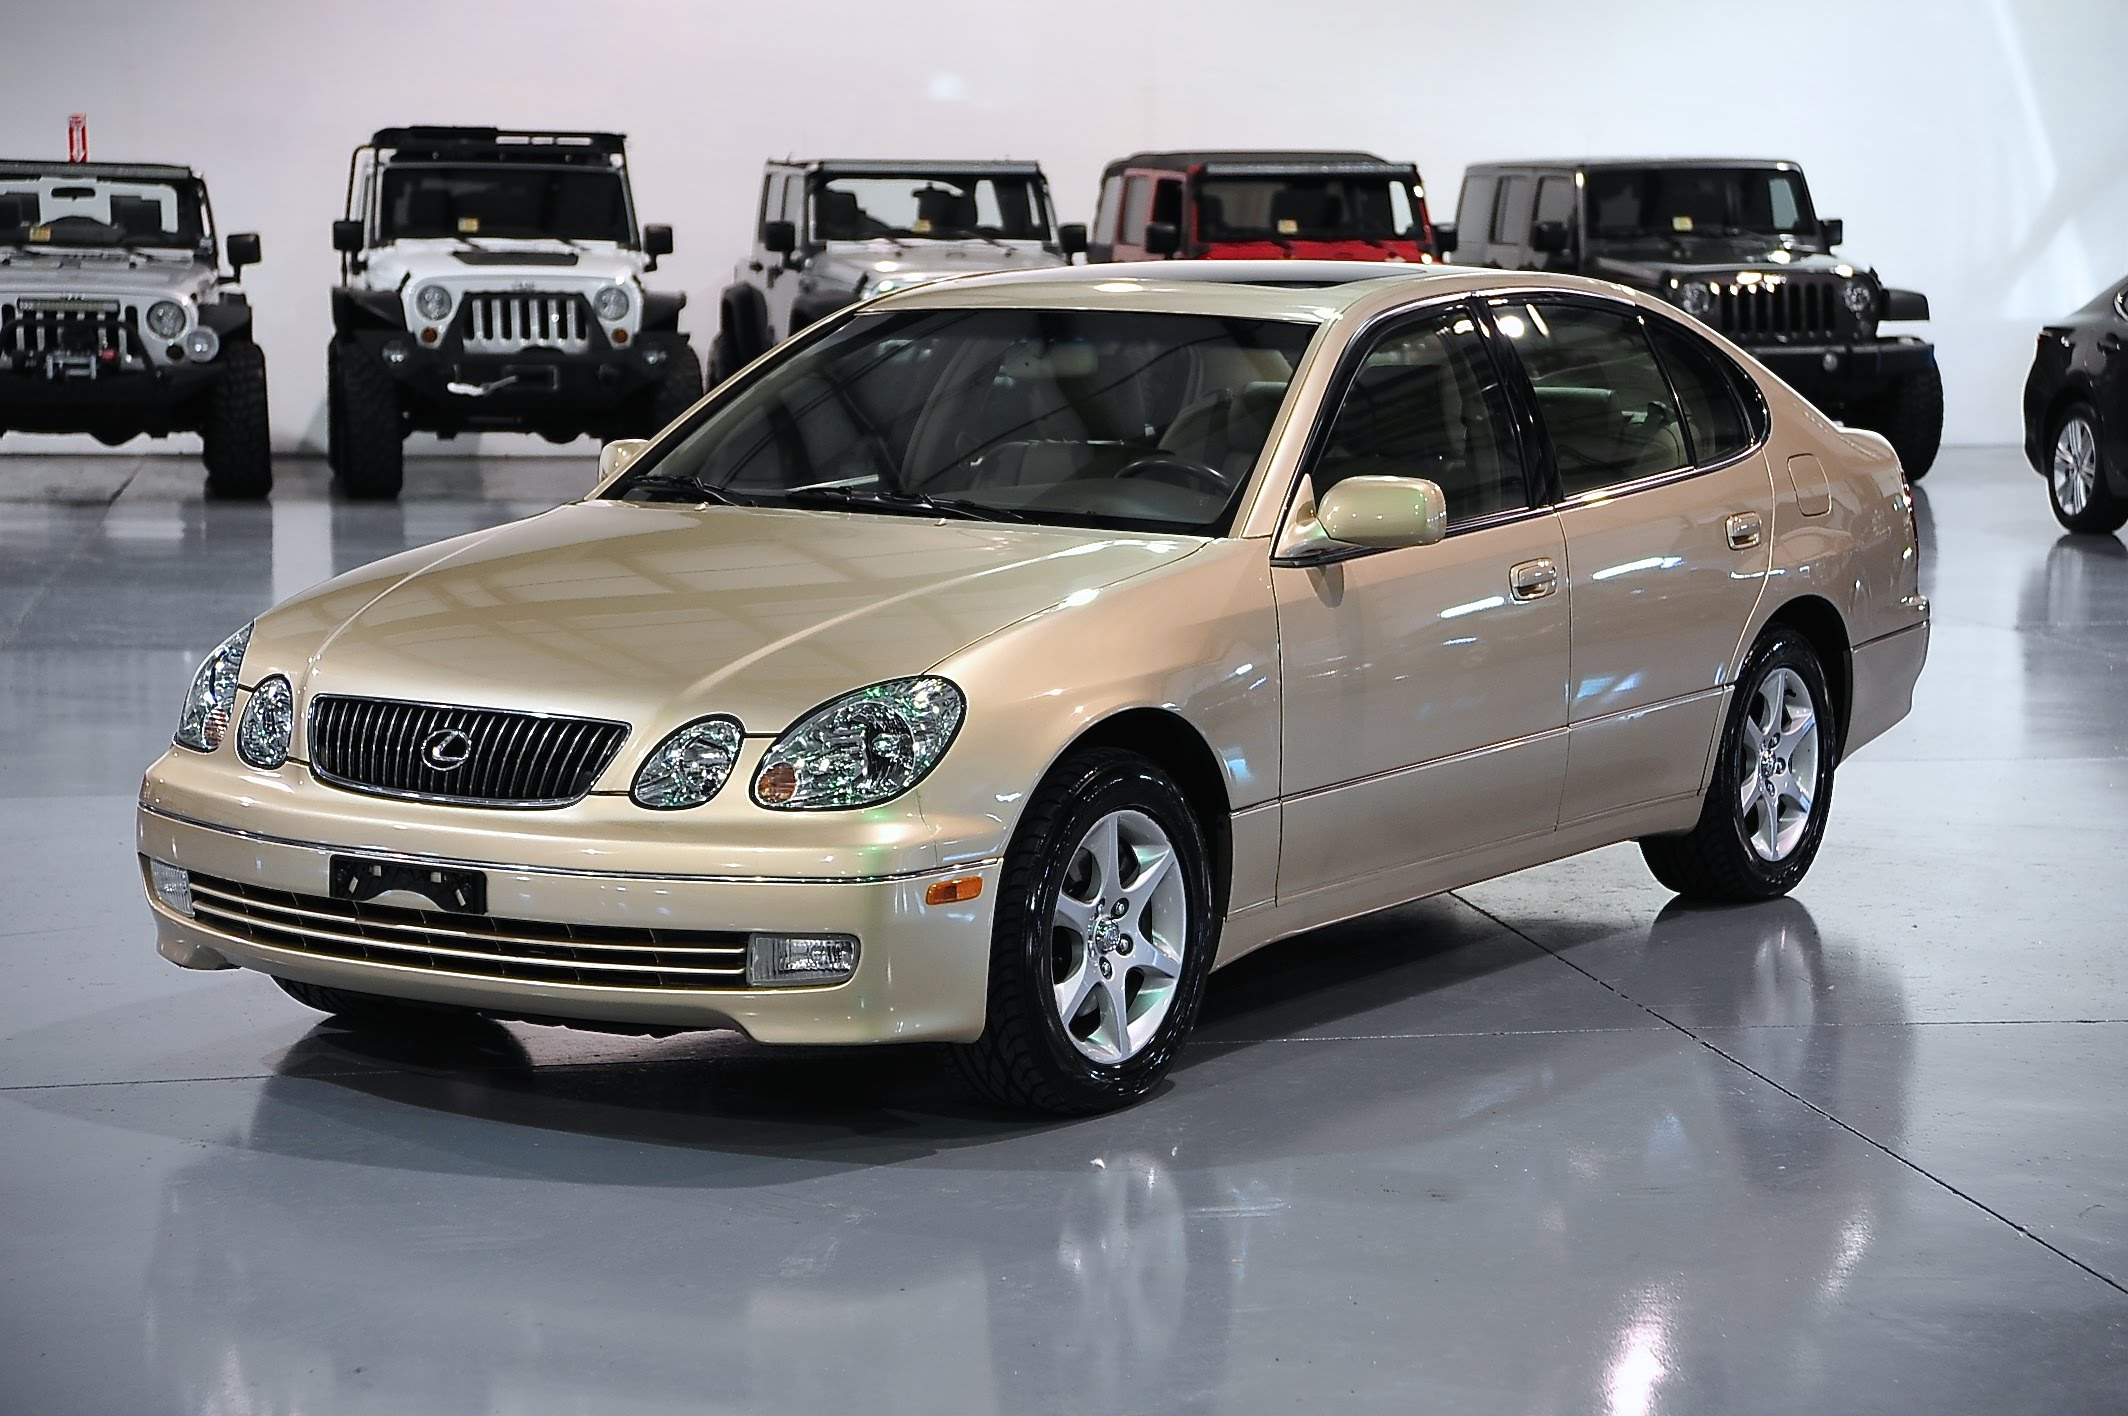 2004 lexus gs 300 photos informations articles. Black Bedroom Furniture Sets. Home Design Ideas